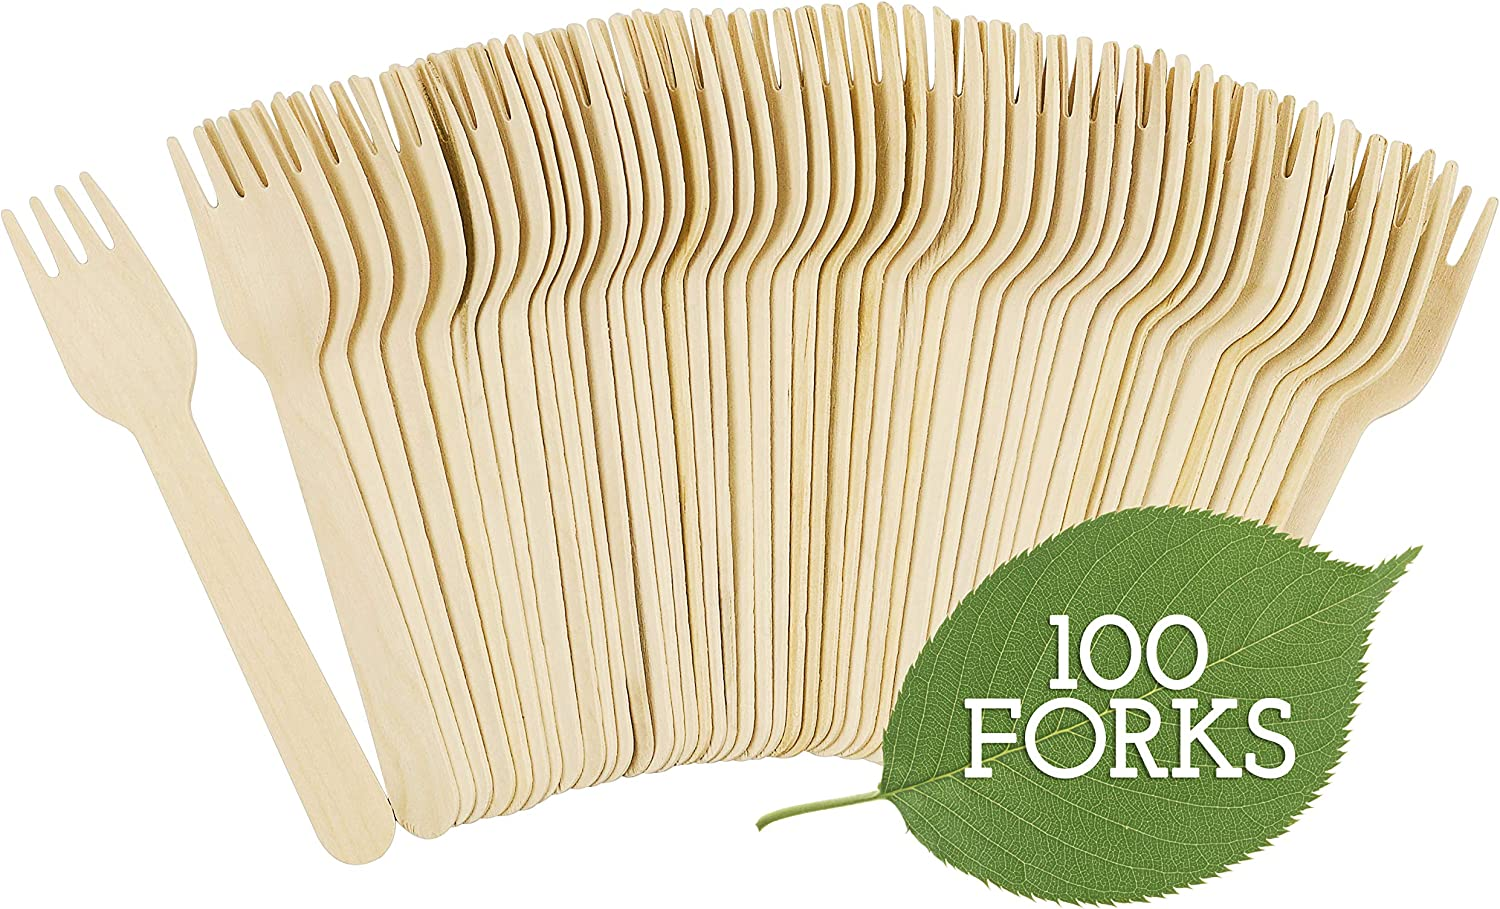 Galashield safety Disposable Wooden Forks - 100 Eco Length Piece New popularity 6.3